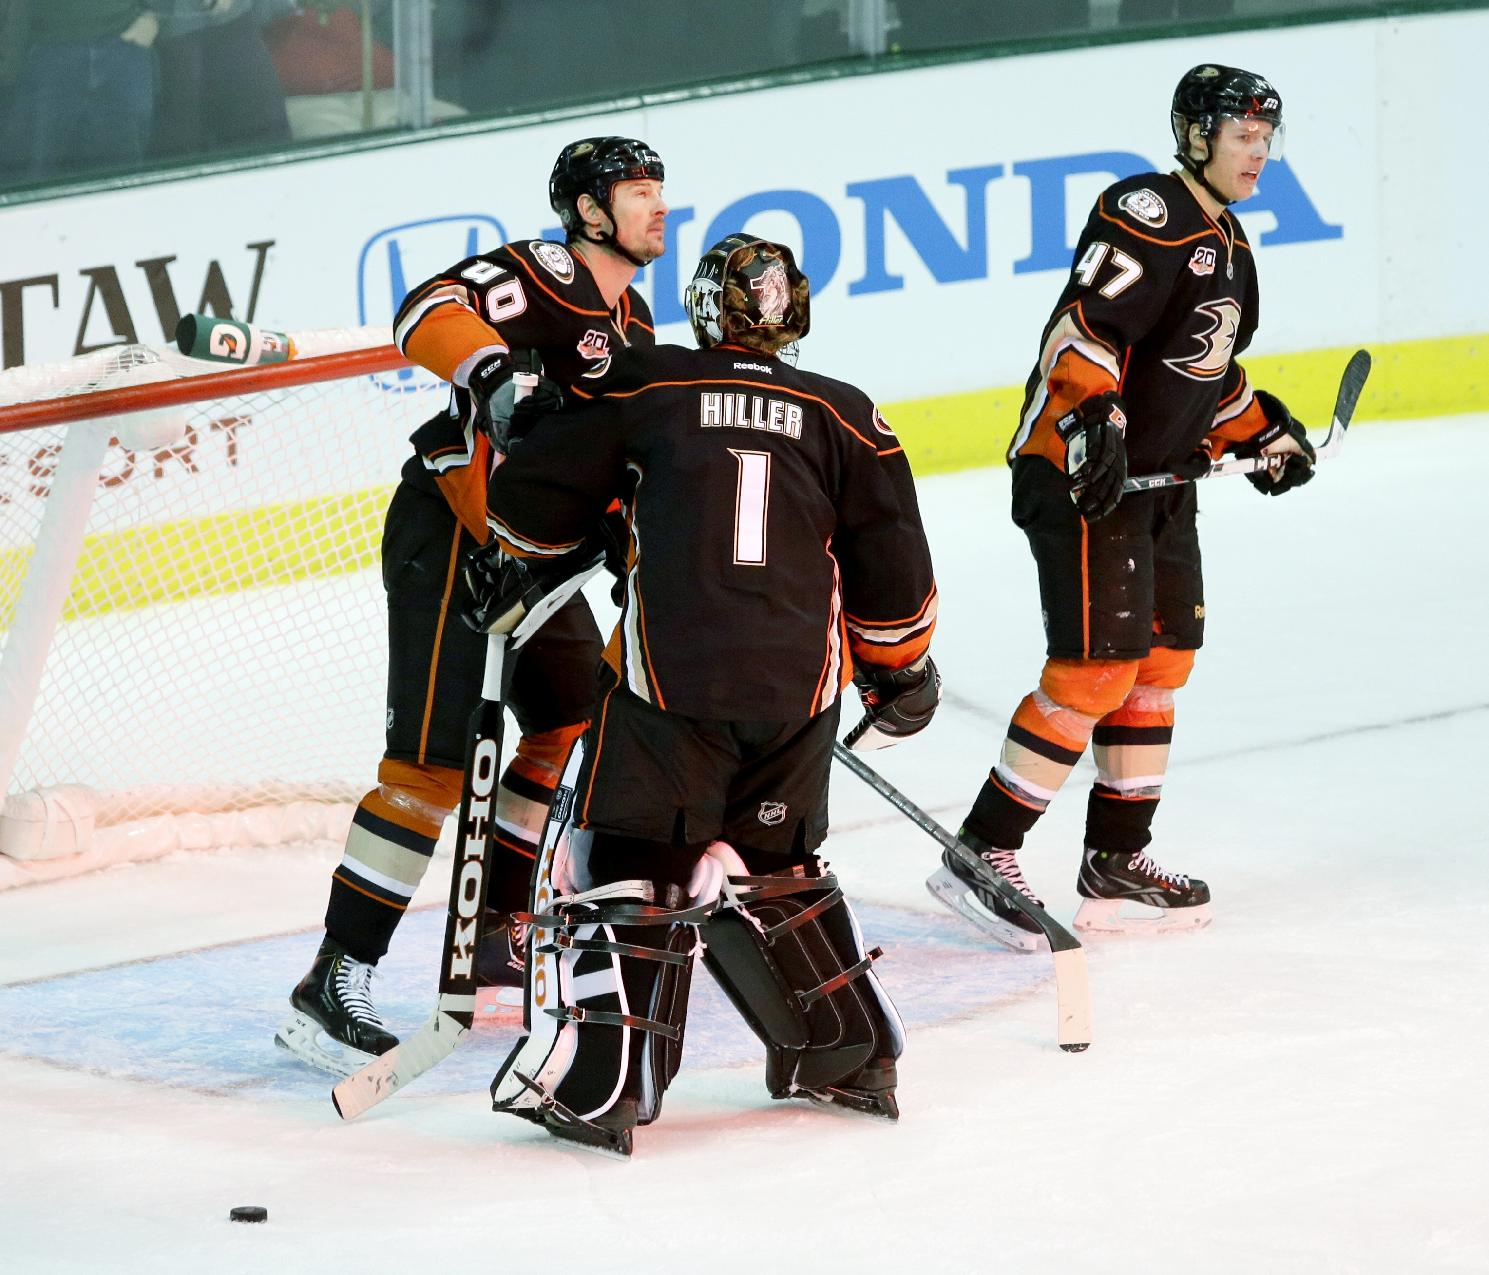 Anaheim Ducks goalie Jonas Hiller (1), defensemen Nolan Yonkman (40) and Hampus Lindholm (47) react after Dallas Stars left wing Antoine Roussel (21) scored a goal during the third period of an NHL hockey game in Dallas, Tuesday, Nov. 26, 2013.  Dallas won the game 6-3